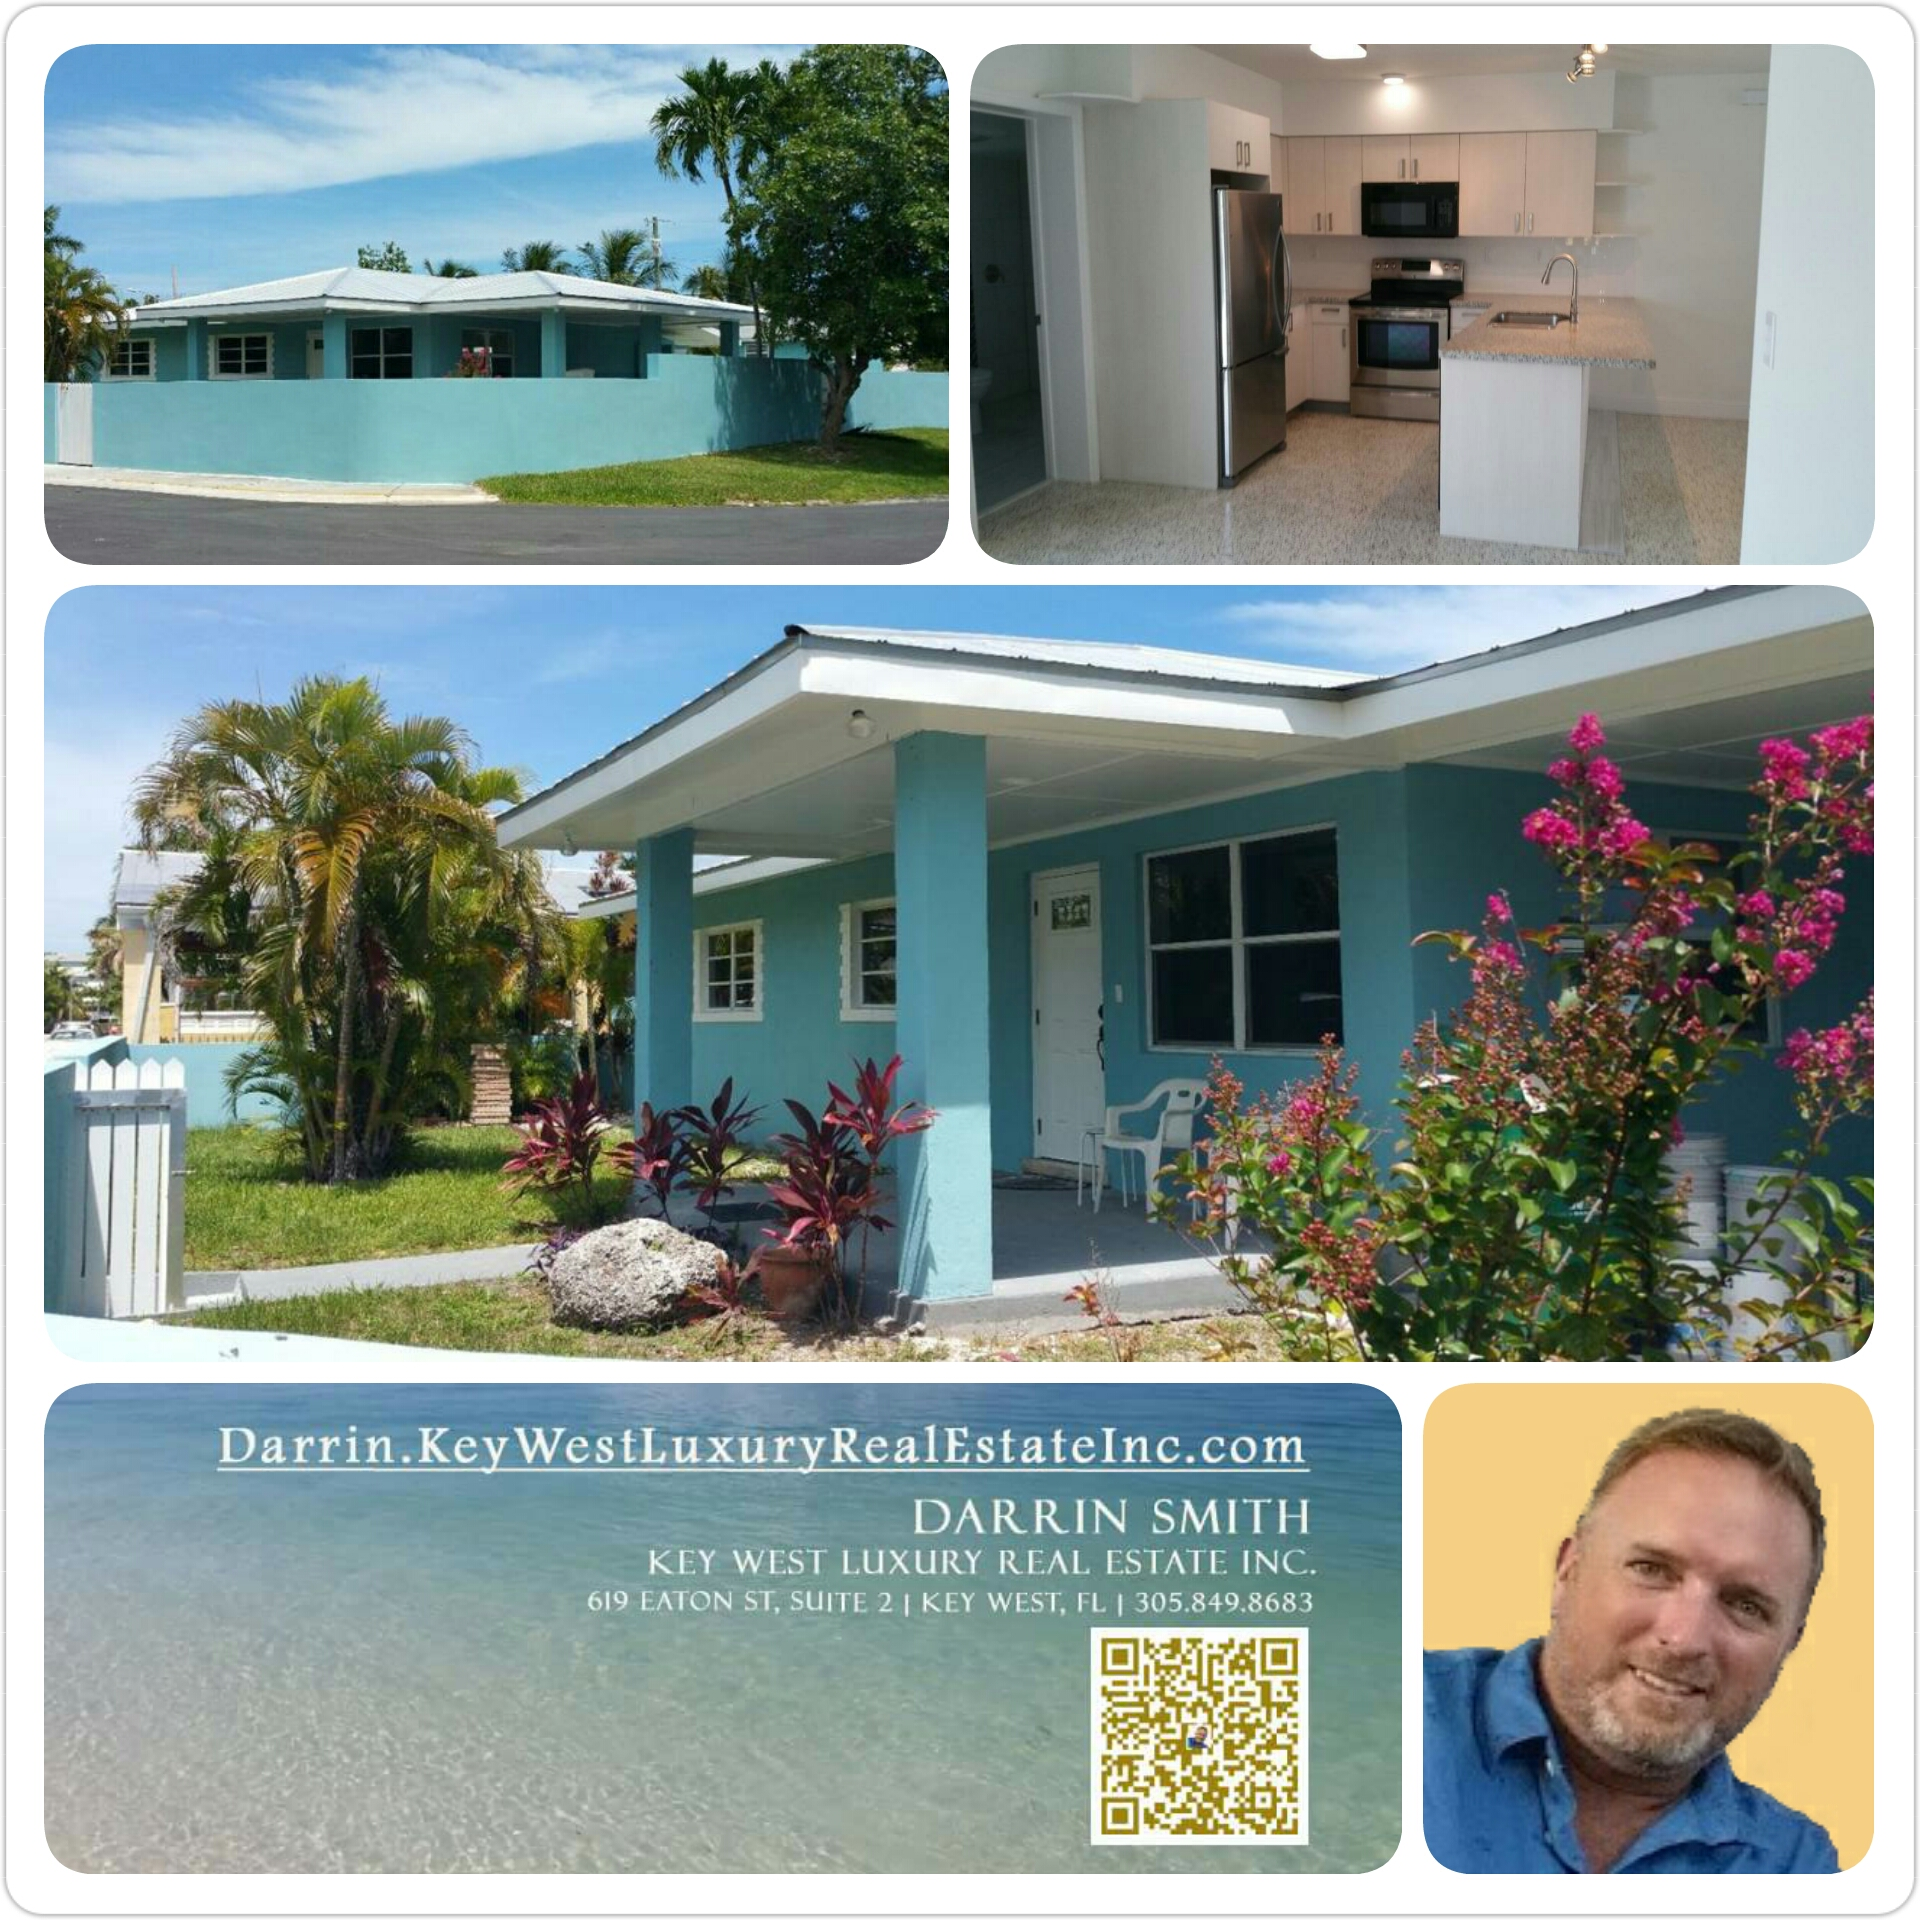 2800 Patterson Ave, Key West is FOR SALE! Listed with Darrin Smith, Key West Luxury Real Estate Inc   305.849.8683   Darrin.KeyWestLuxuryRealEstateInc.com